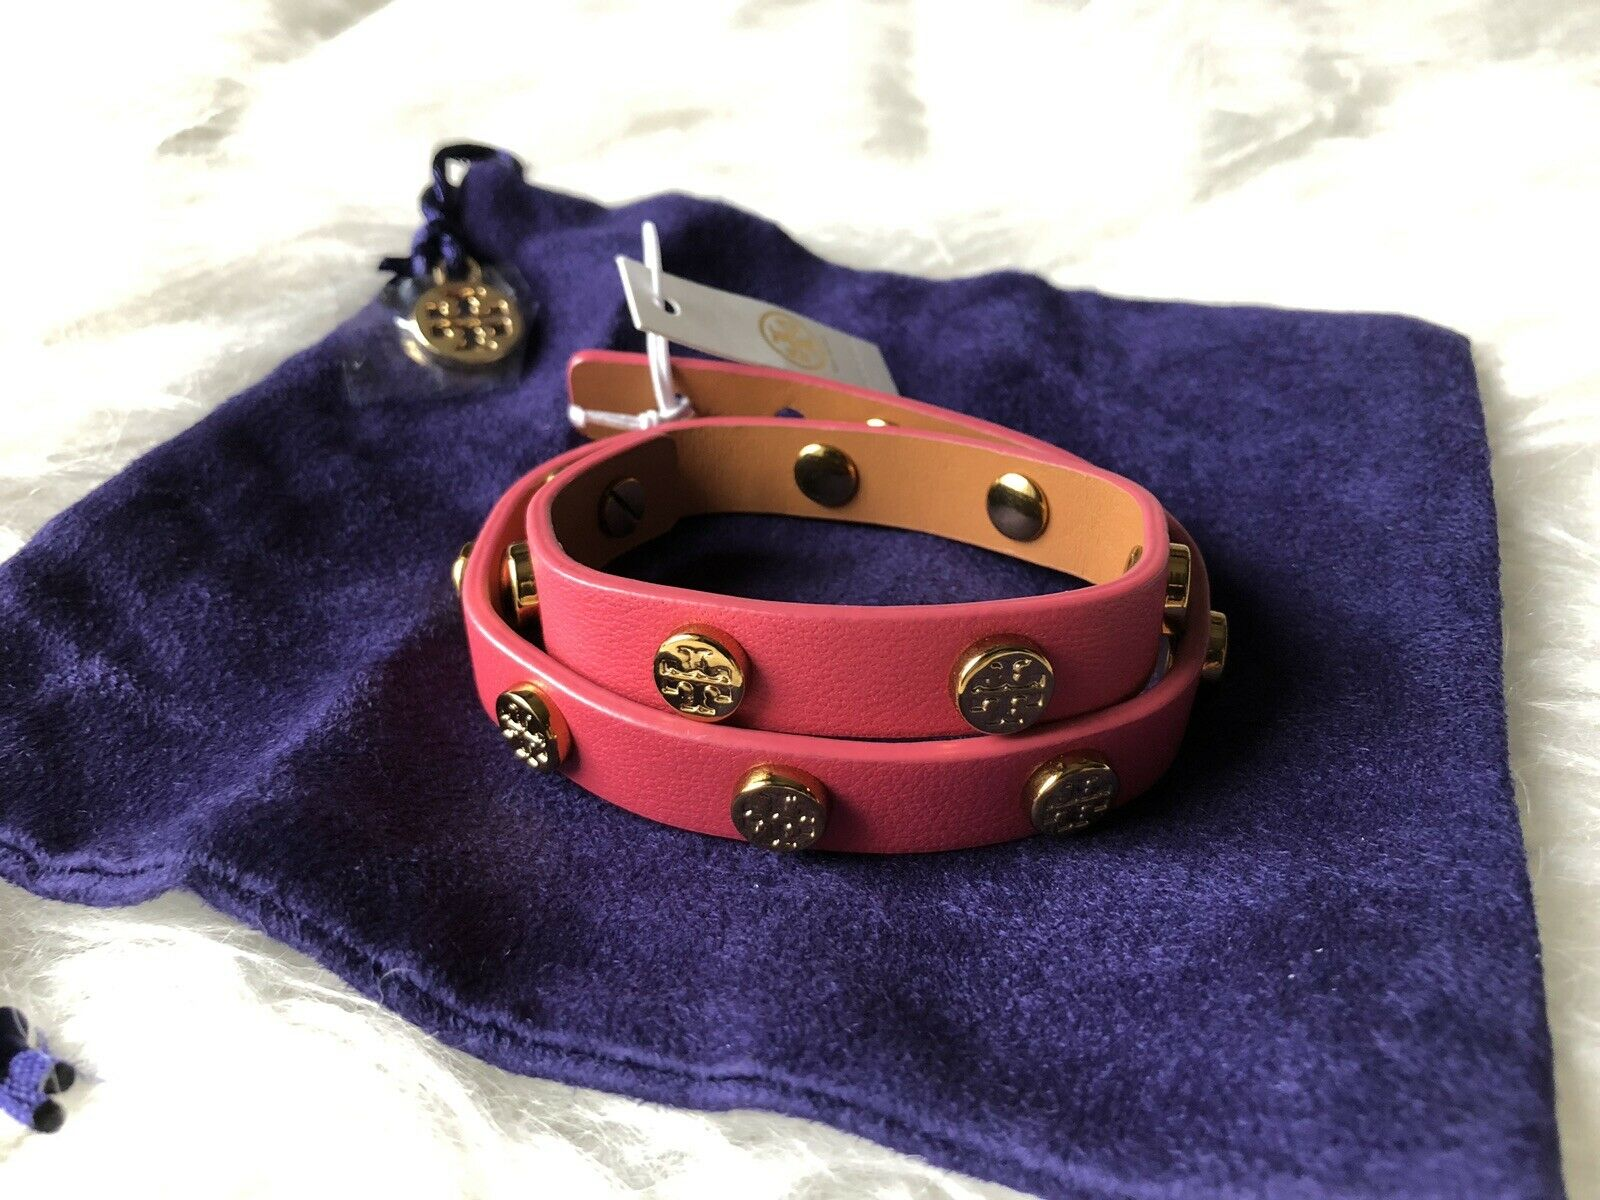 NWT Tory Burch Double Wrap Logo Stud Bracelet In Pink Leather + Dust Bag